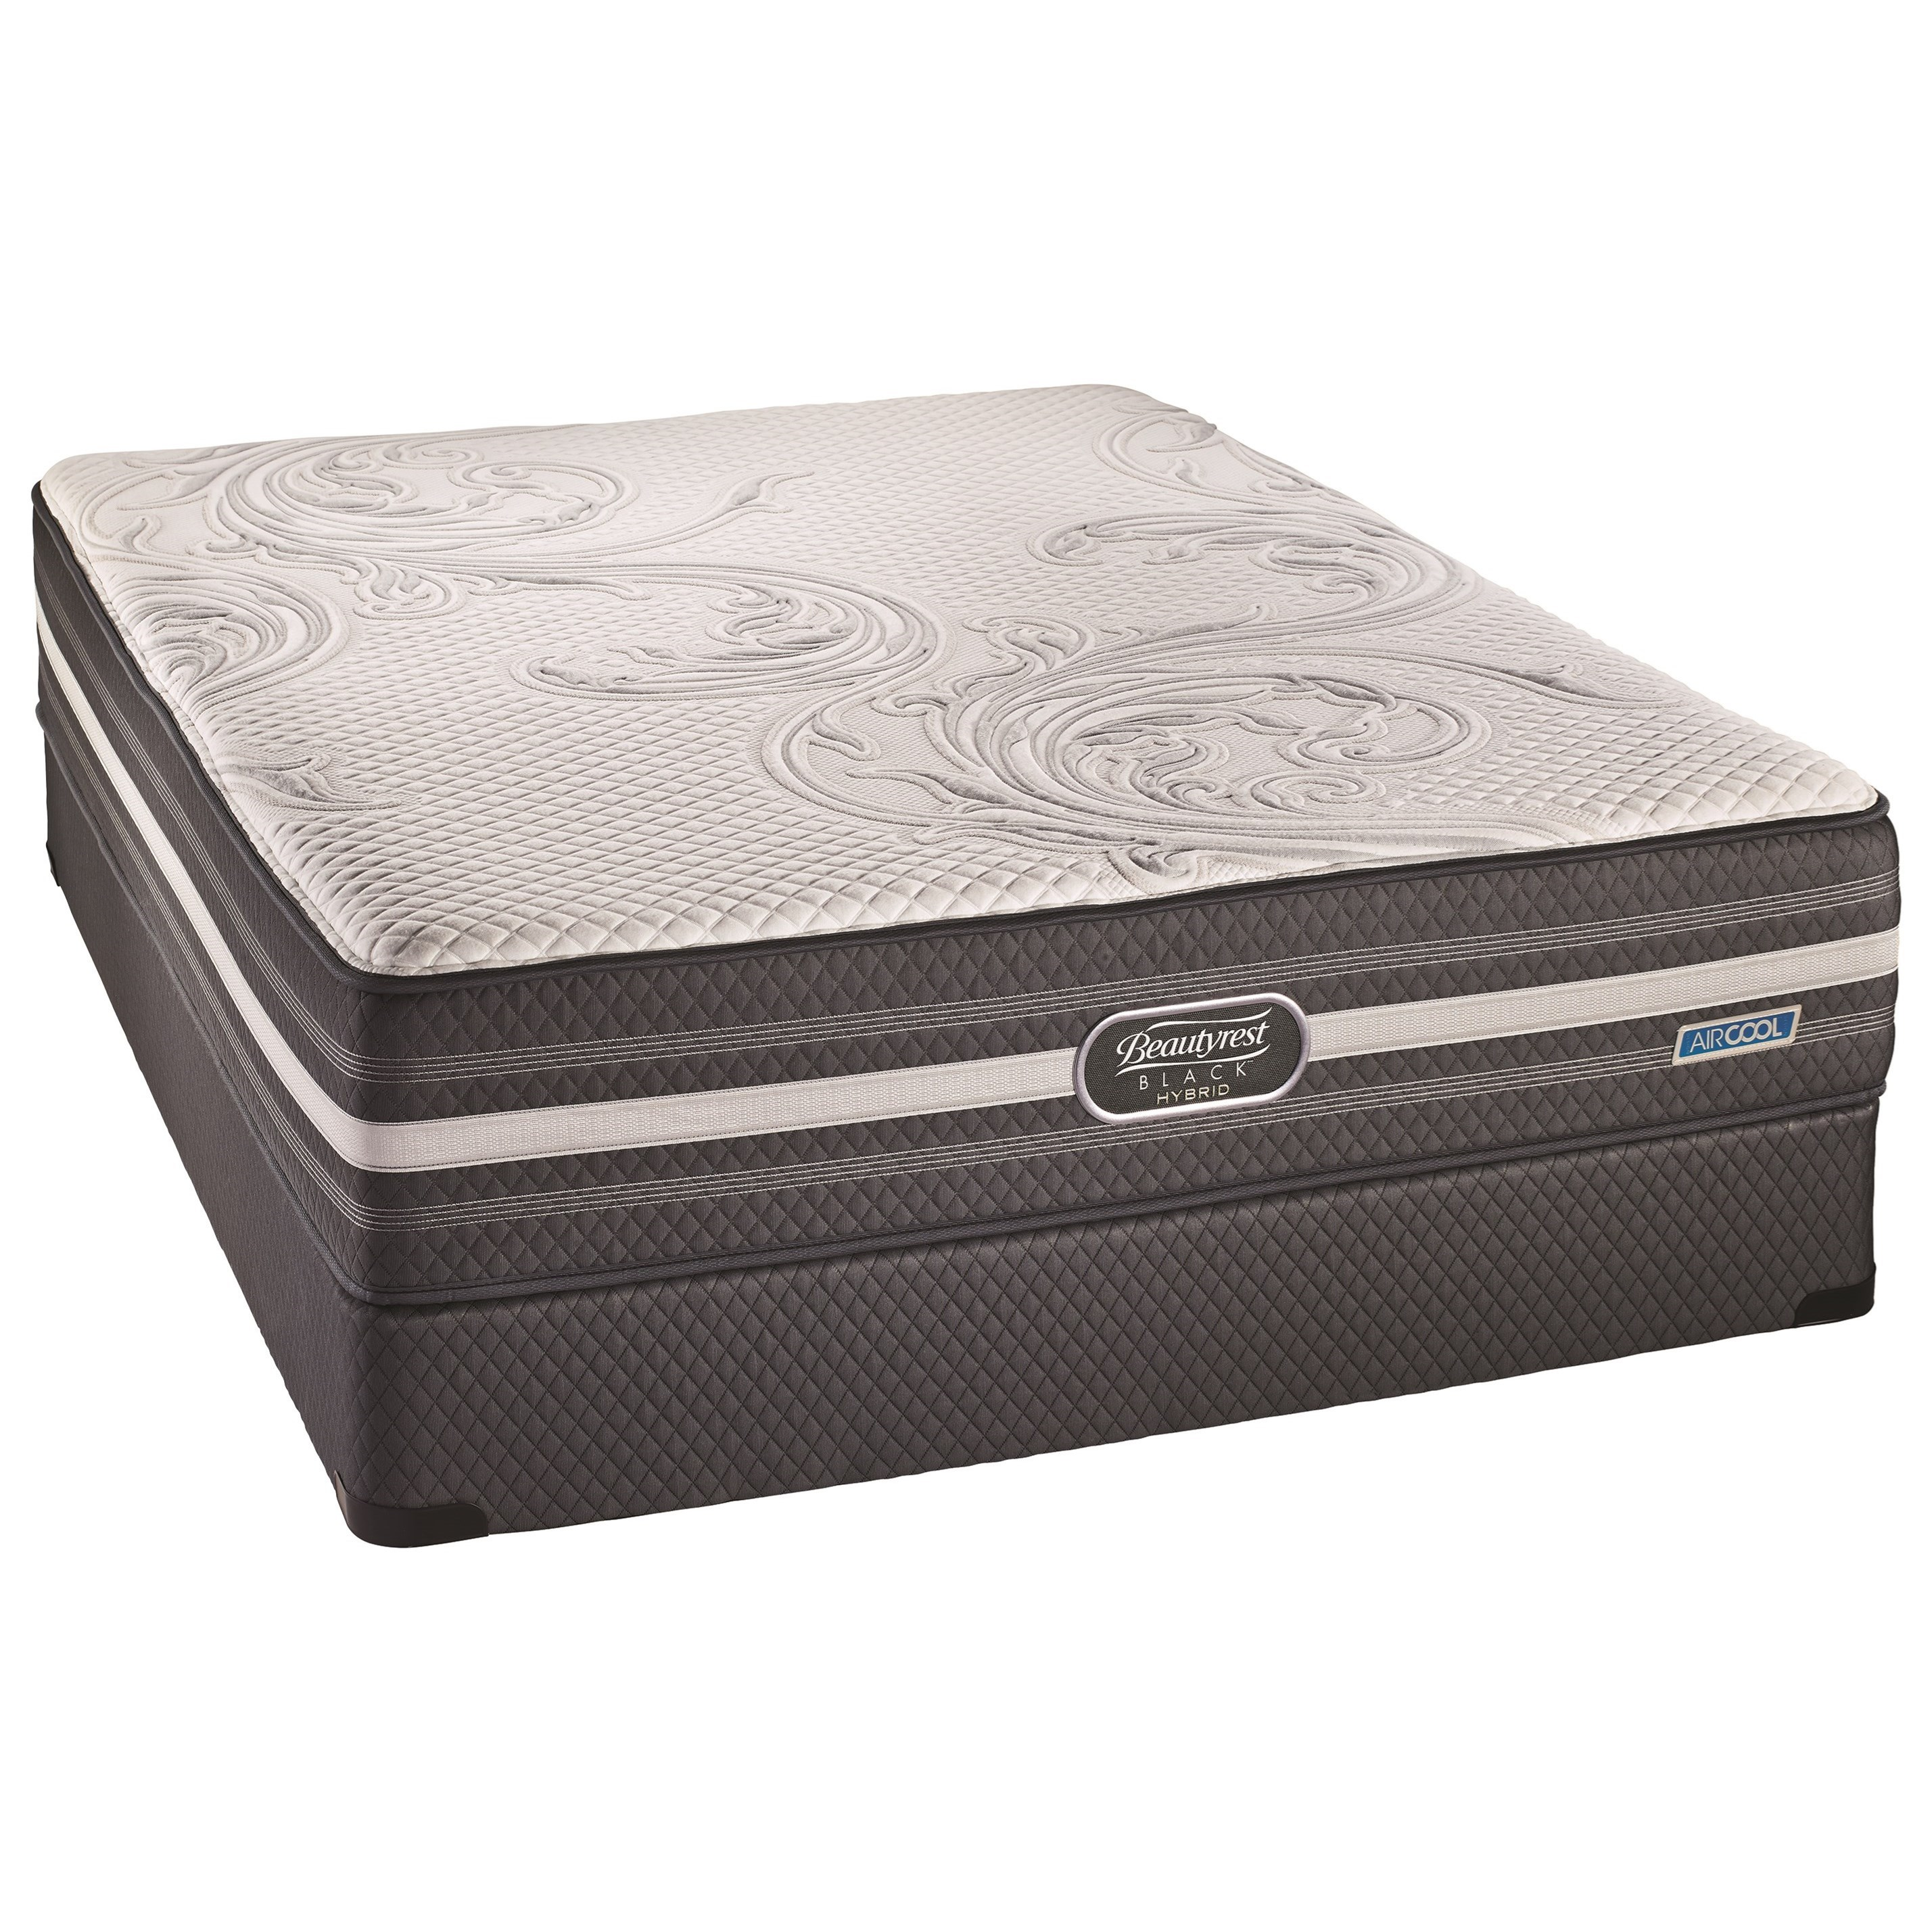 BR Black Hybrid Valentina Lux Firm King Luxury Firm Hybrid Mattress Set by Beautyrest Canada at Jordan's Home Furnishings